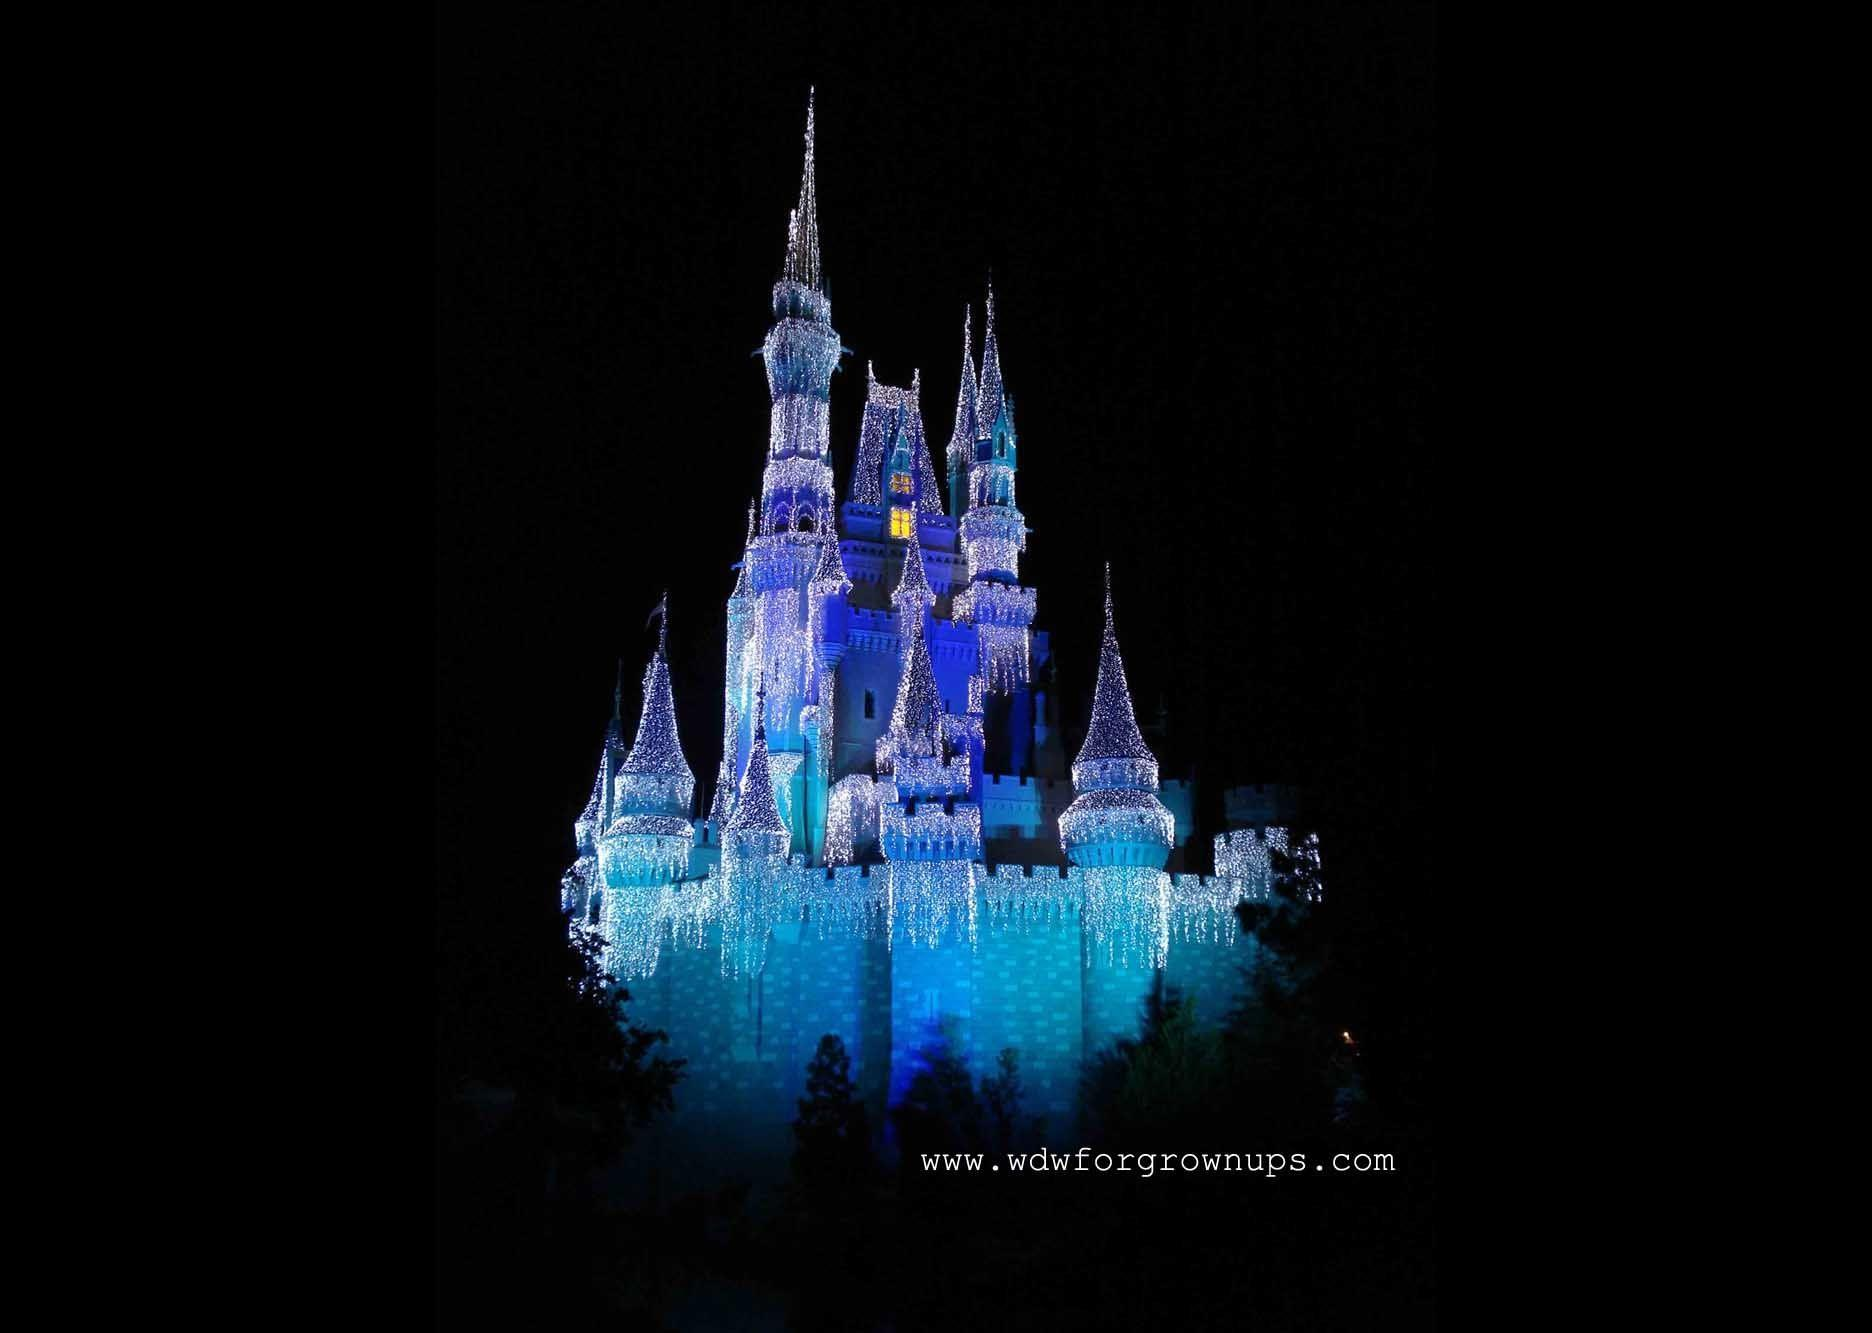 Disney Desktop Wallpaper | Walt Disney World For Grownups